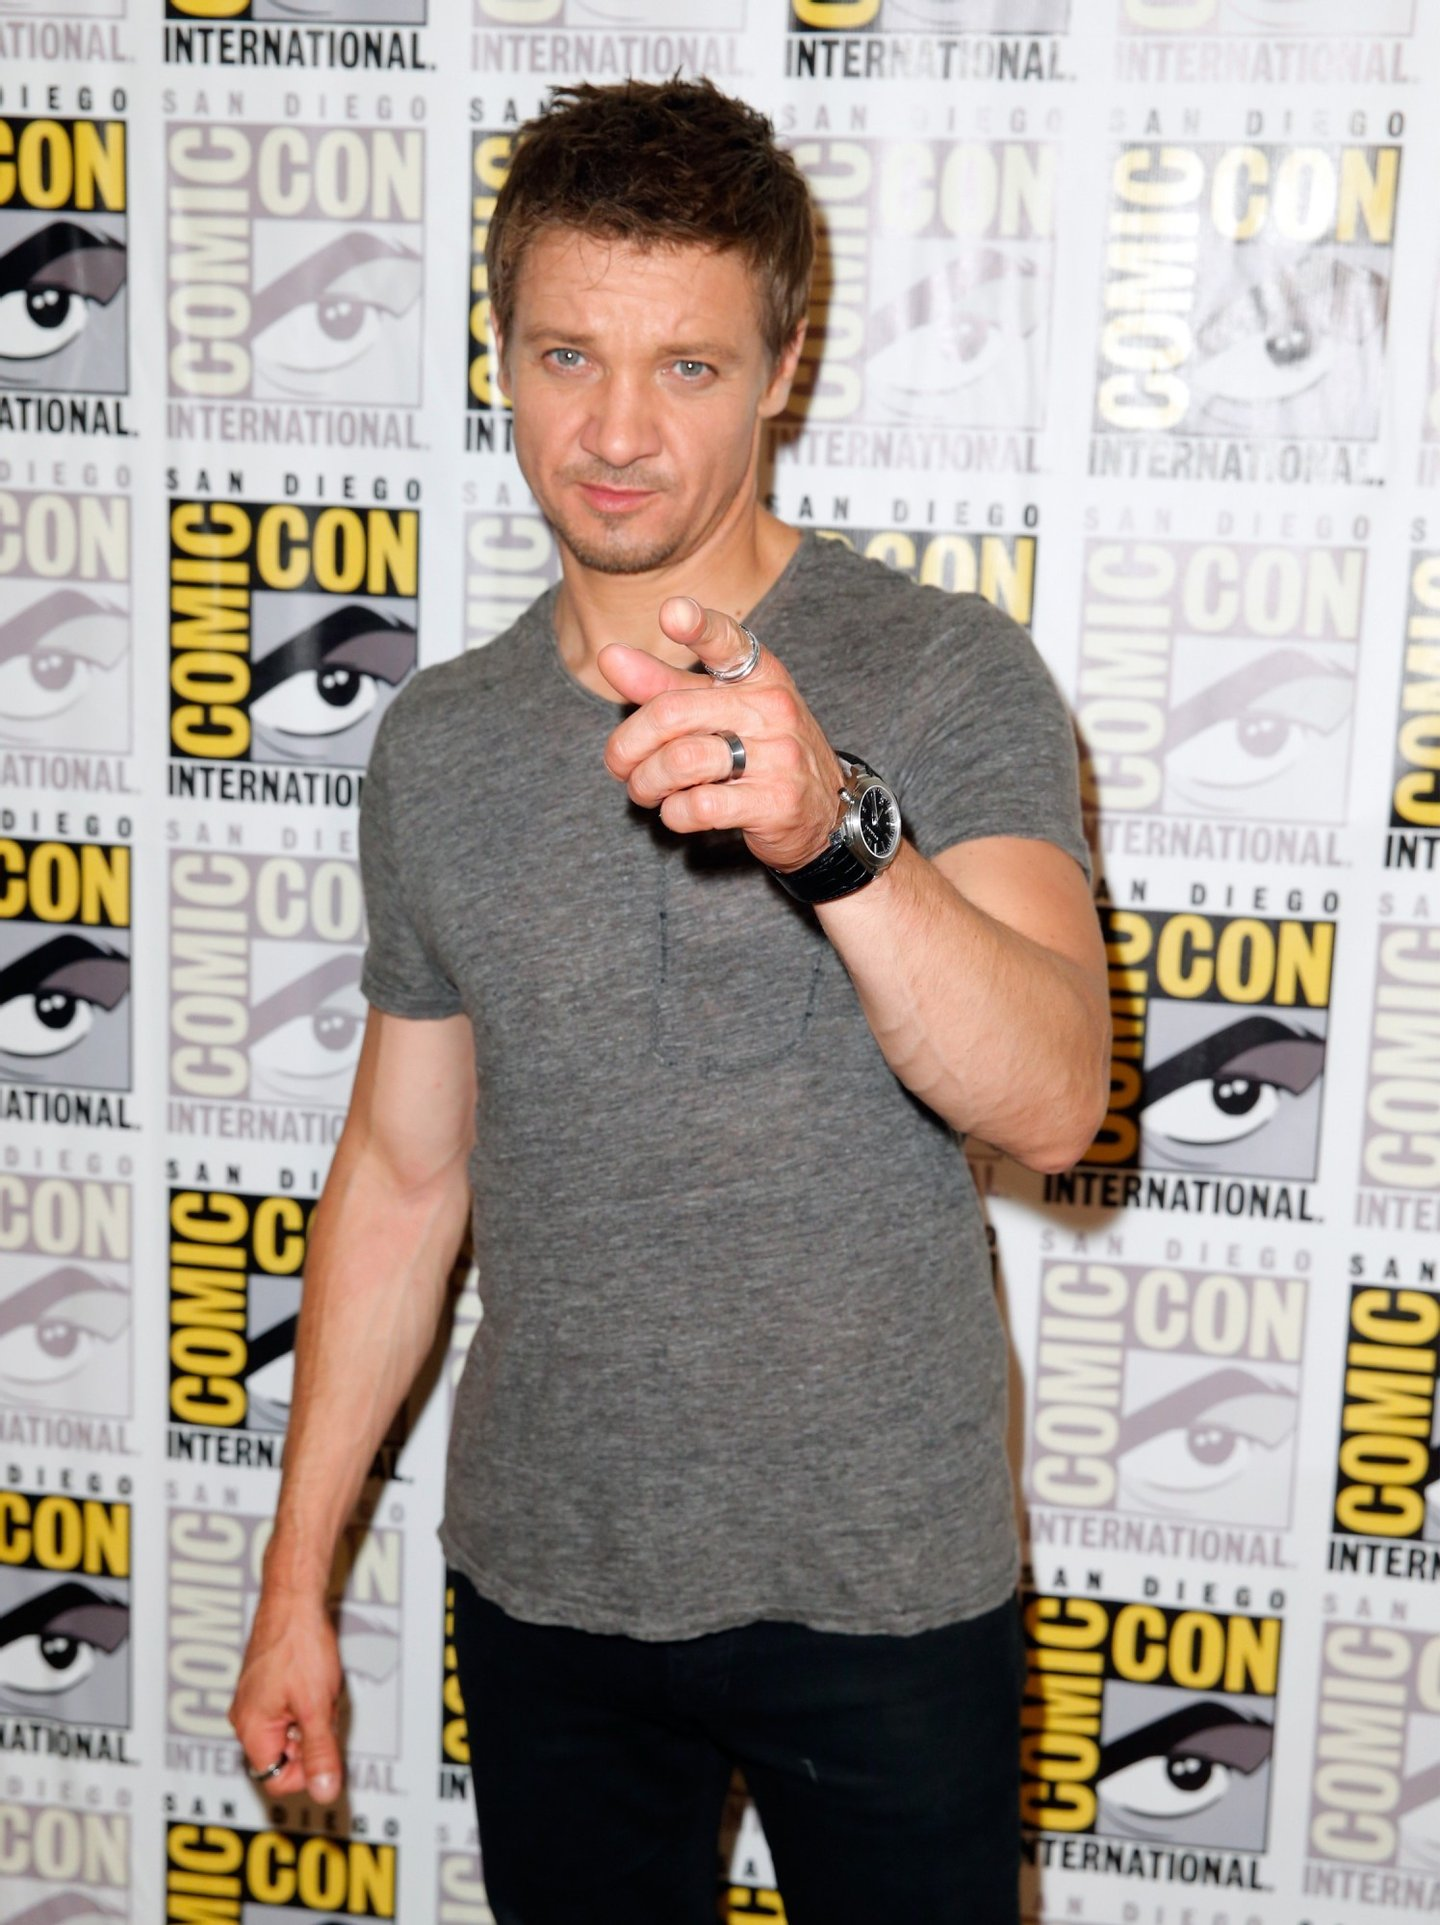 "SAN DIEGO, CA - JULY 26:  Actor Jeremy Renner attends Marvel's Hall H Press Line for ""Ant-Man"" and ""Avengers: Age Of Ultron"" during Comic-Con International 2014 at San Diego Convention Center on July 26, 2014 in San Diego, California.  (Photo by Joe Scarnici/Getty Images for Disney)"